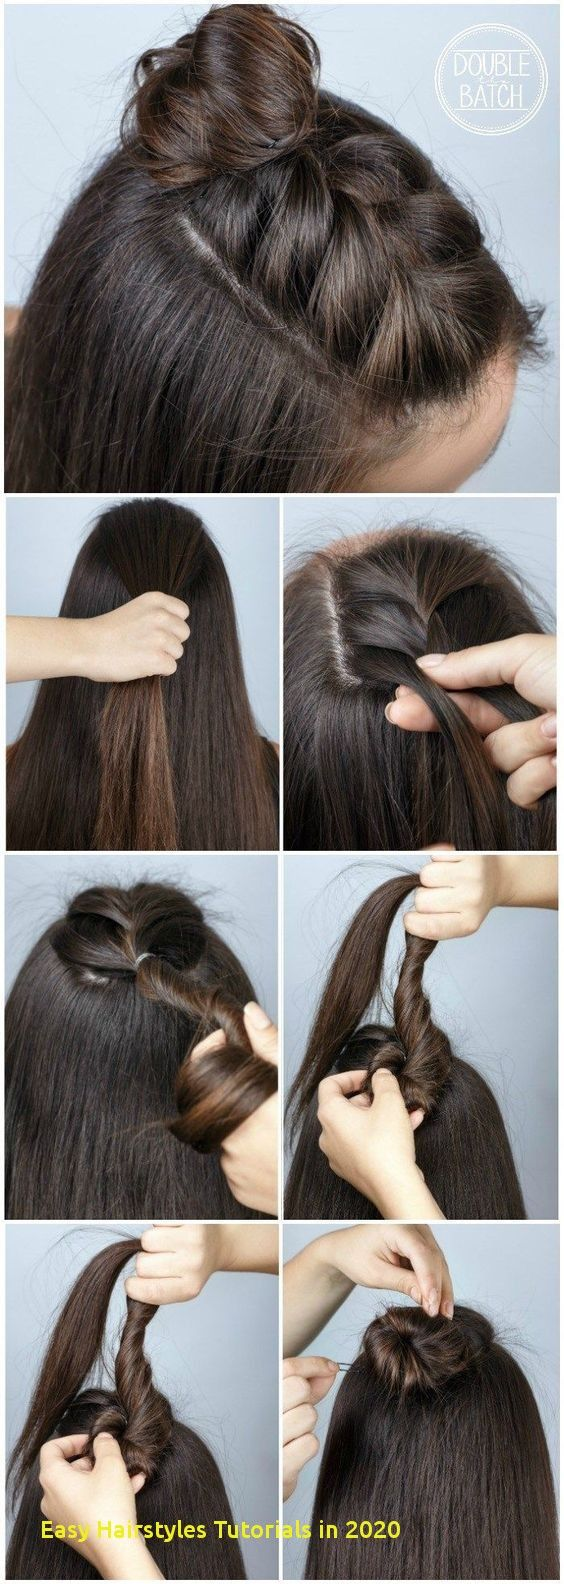 96 Awesome Easy Hairstyles Tutorials In 2020